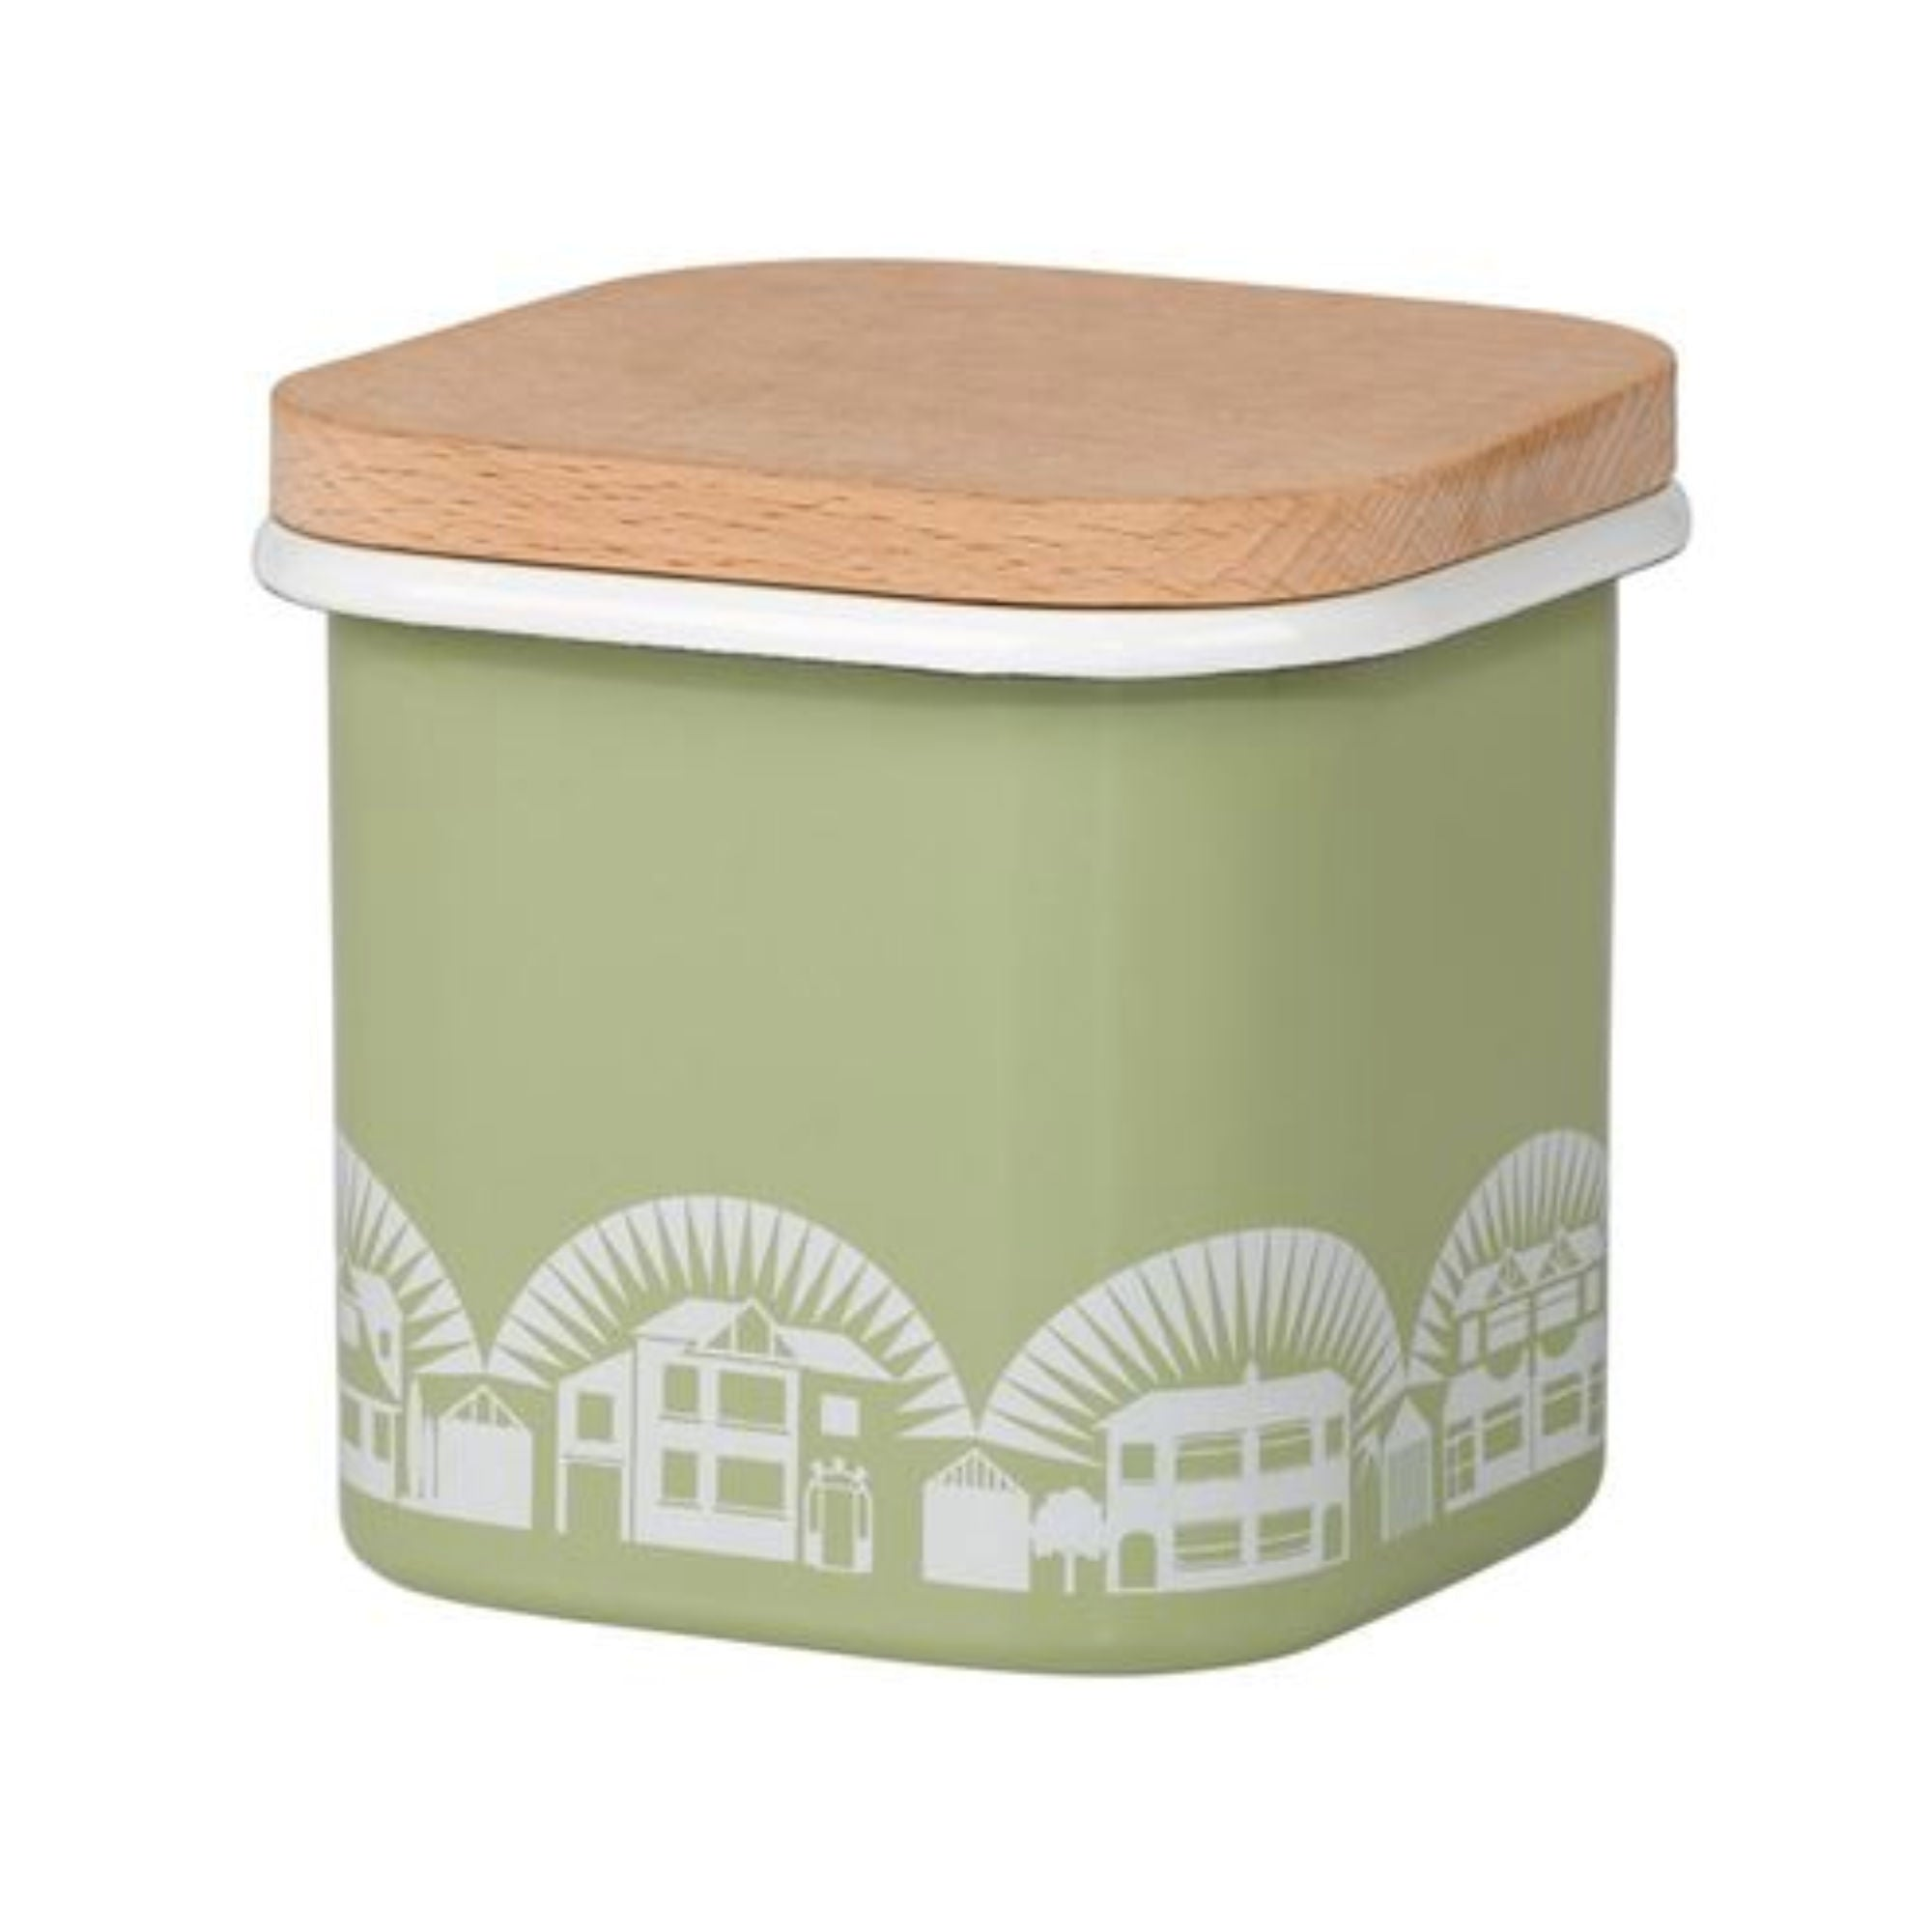 Wild and Wolf Enamel Lichen Green Storage Pot 700ml